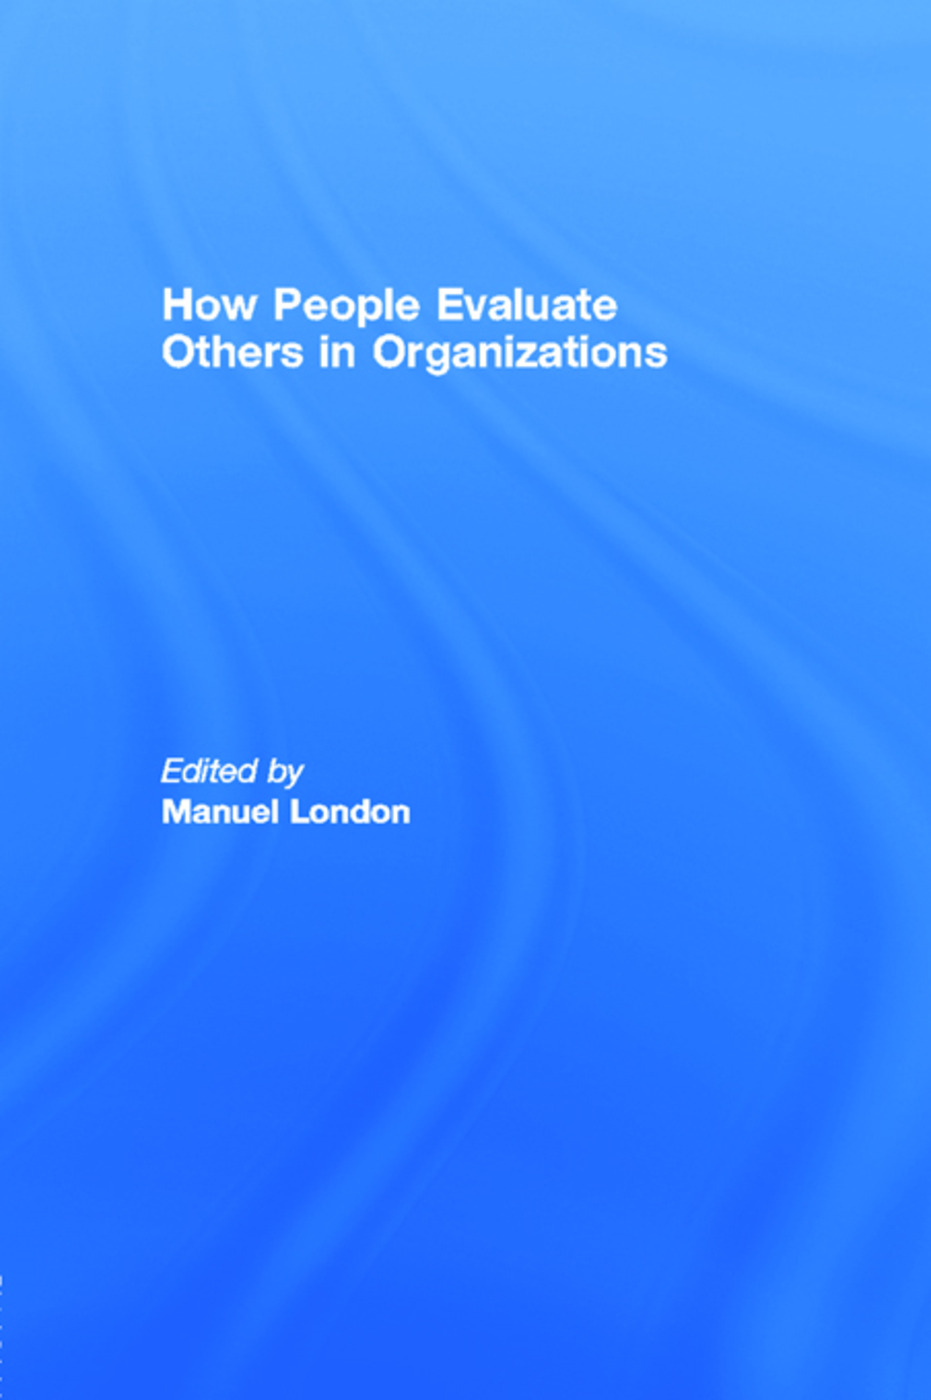 How People Evaluate Others in Organizations